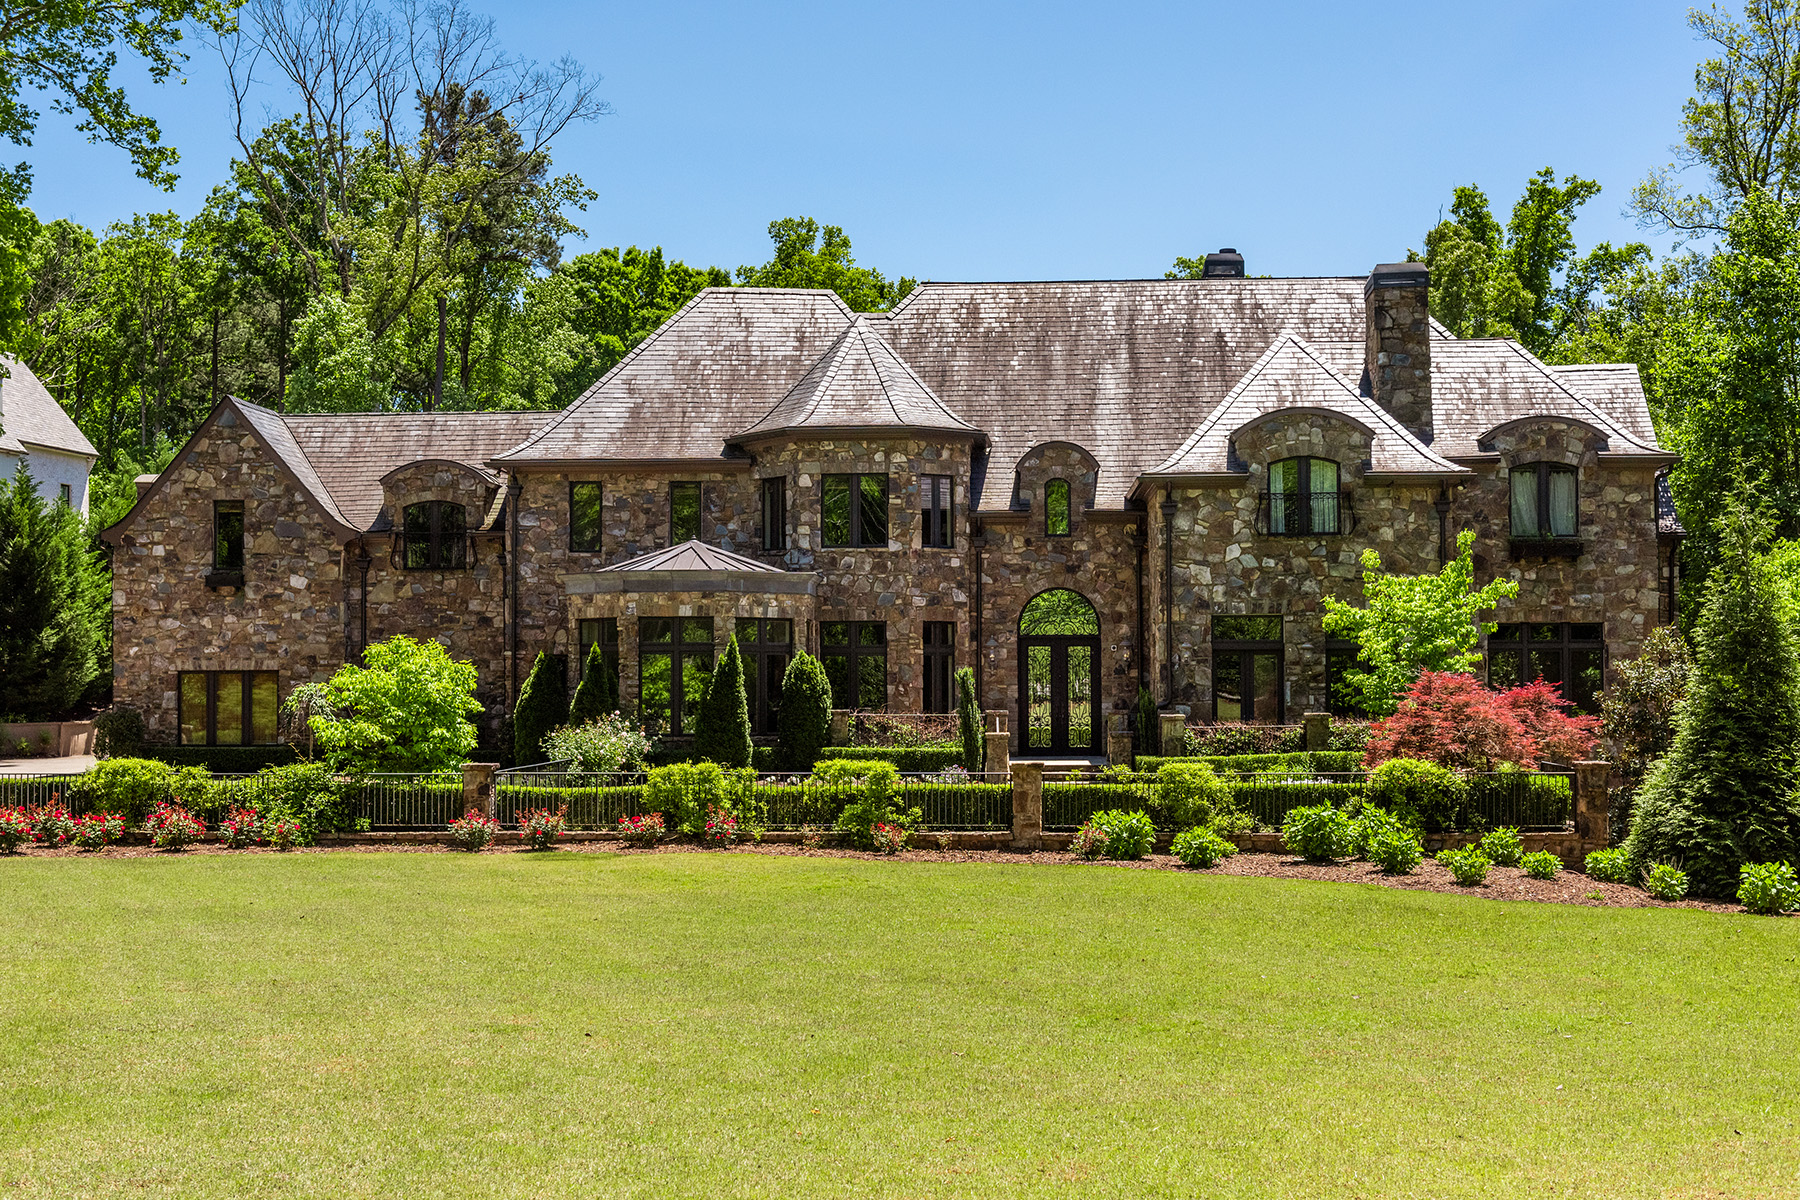 Single Family Homes for Sale at Magnificent Stately Gated 2.55+/- Acre Estate Home 1376 Mount Paran Road NW Atlanta, Georgia 30327 United States